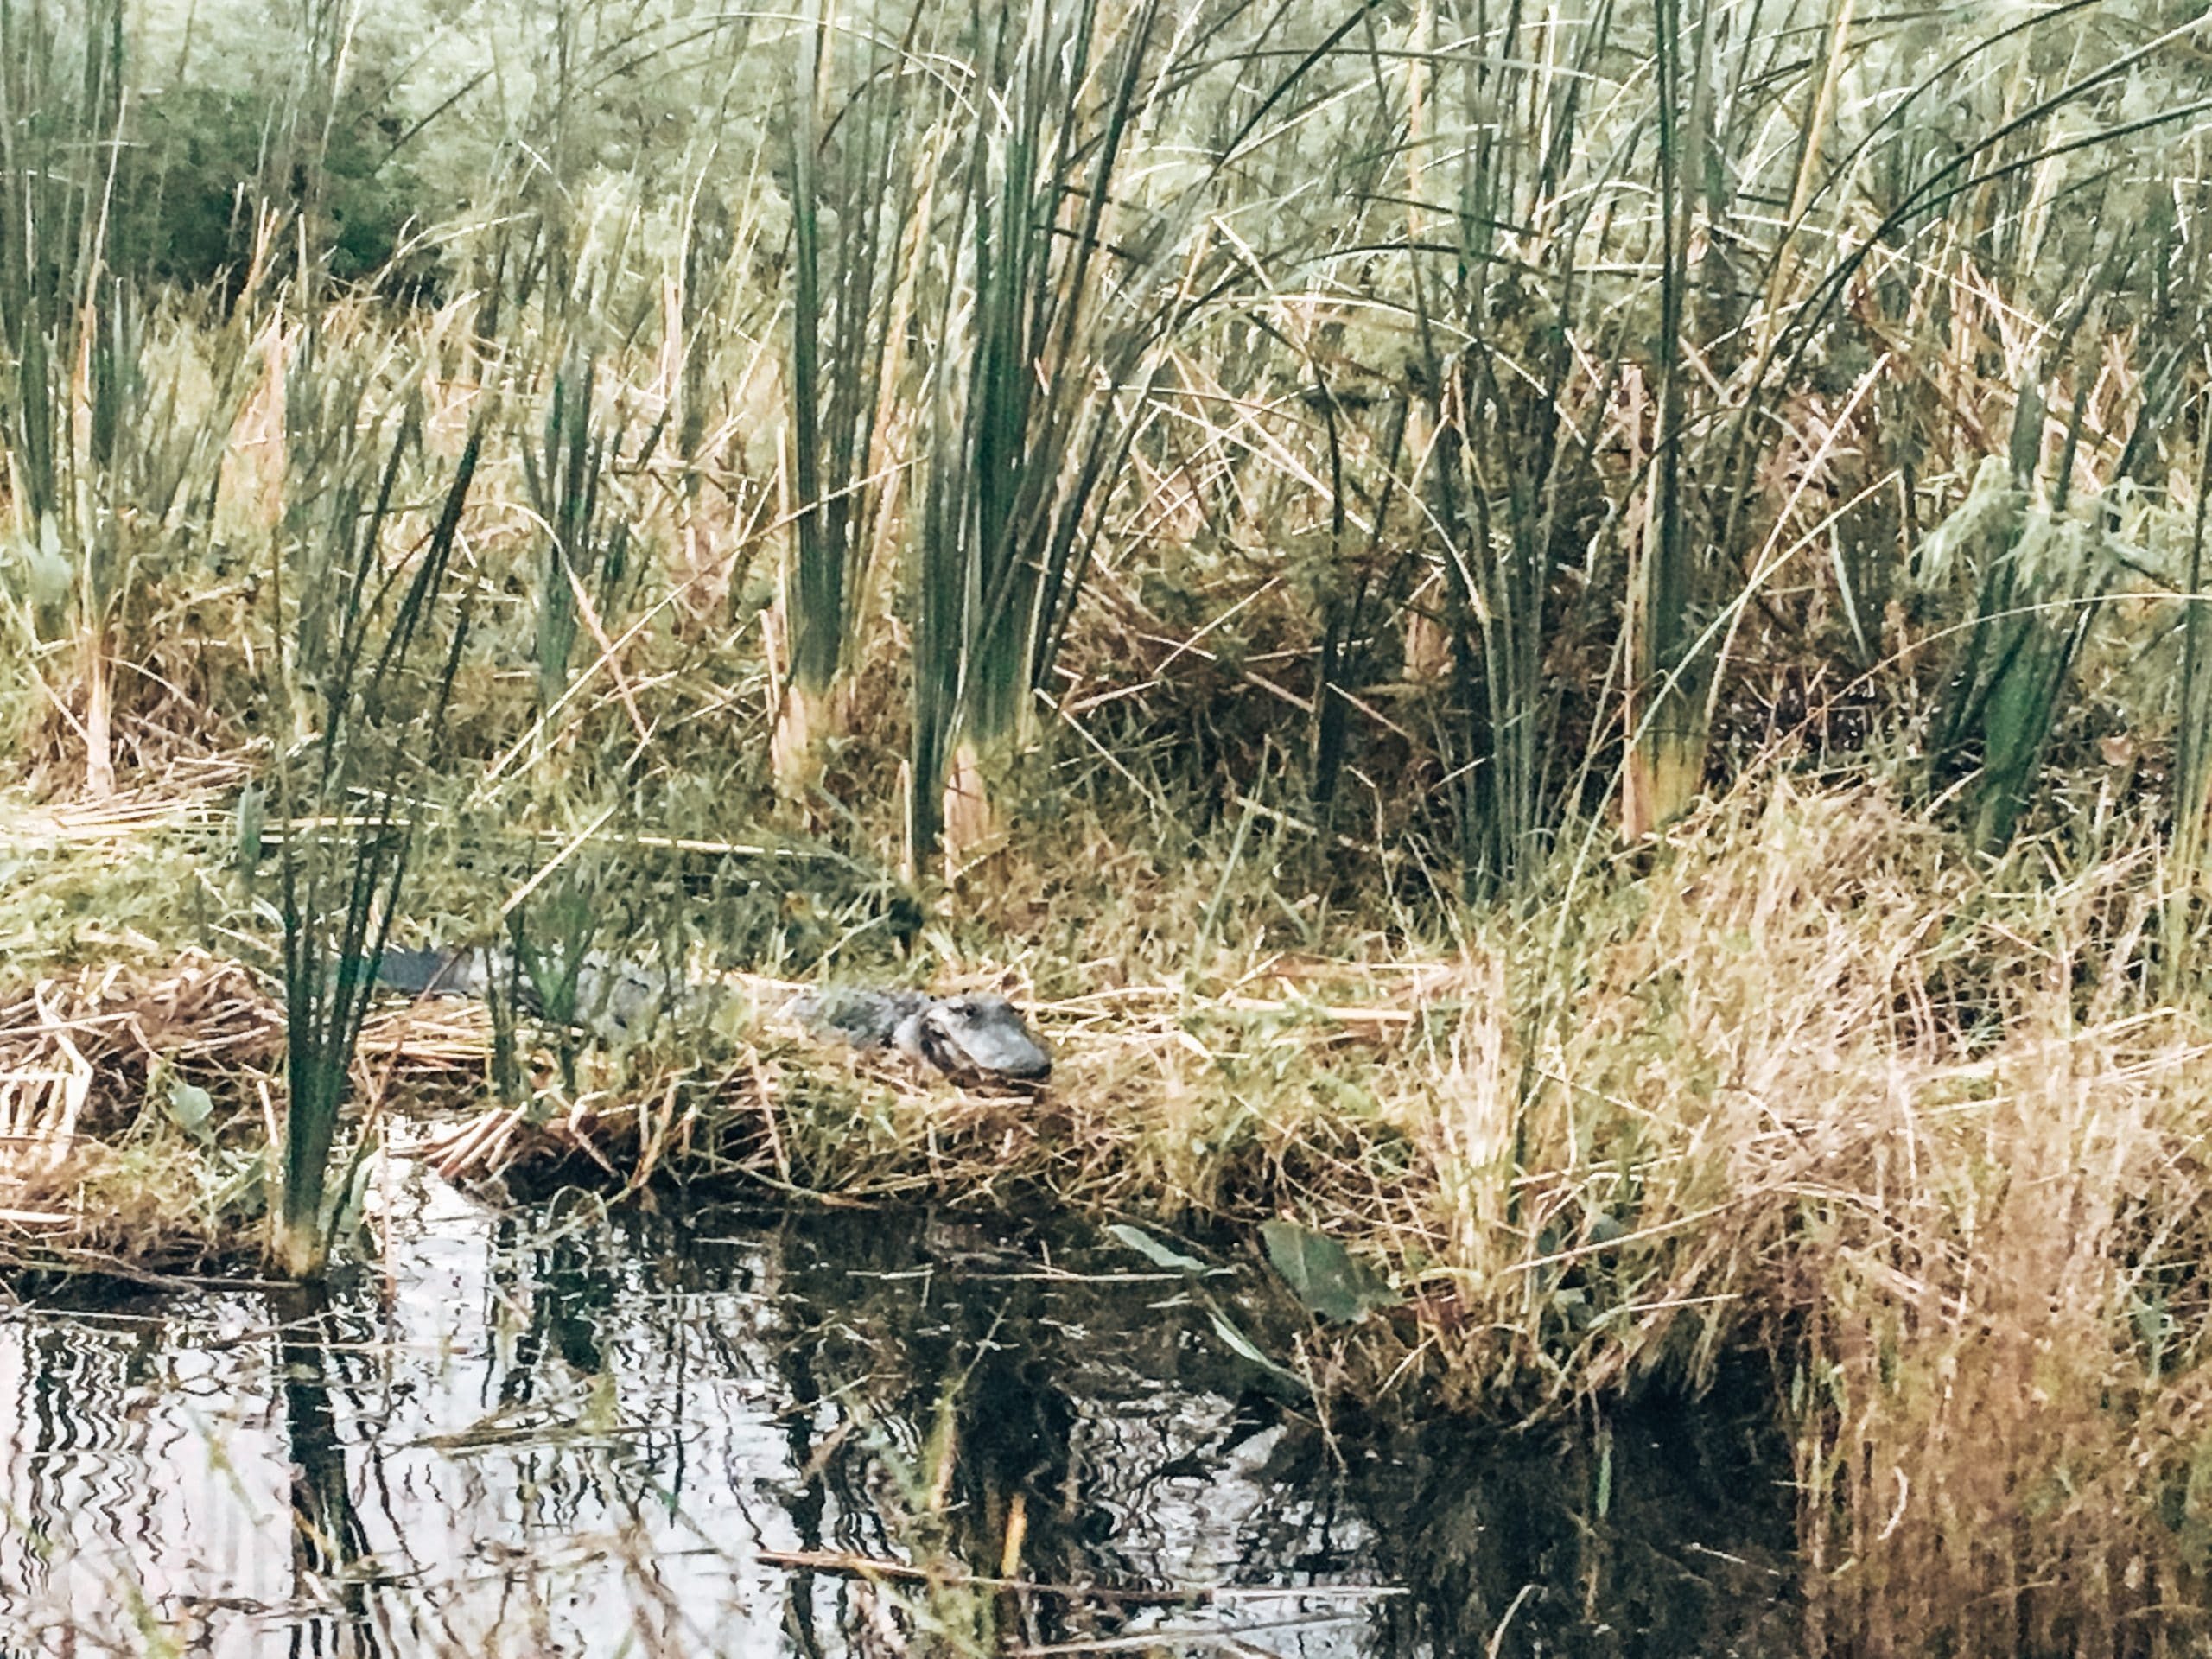 Alligator lying down in the Everglades